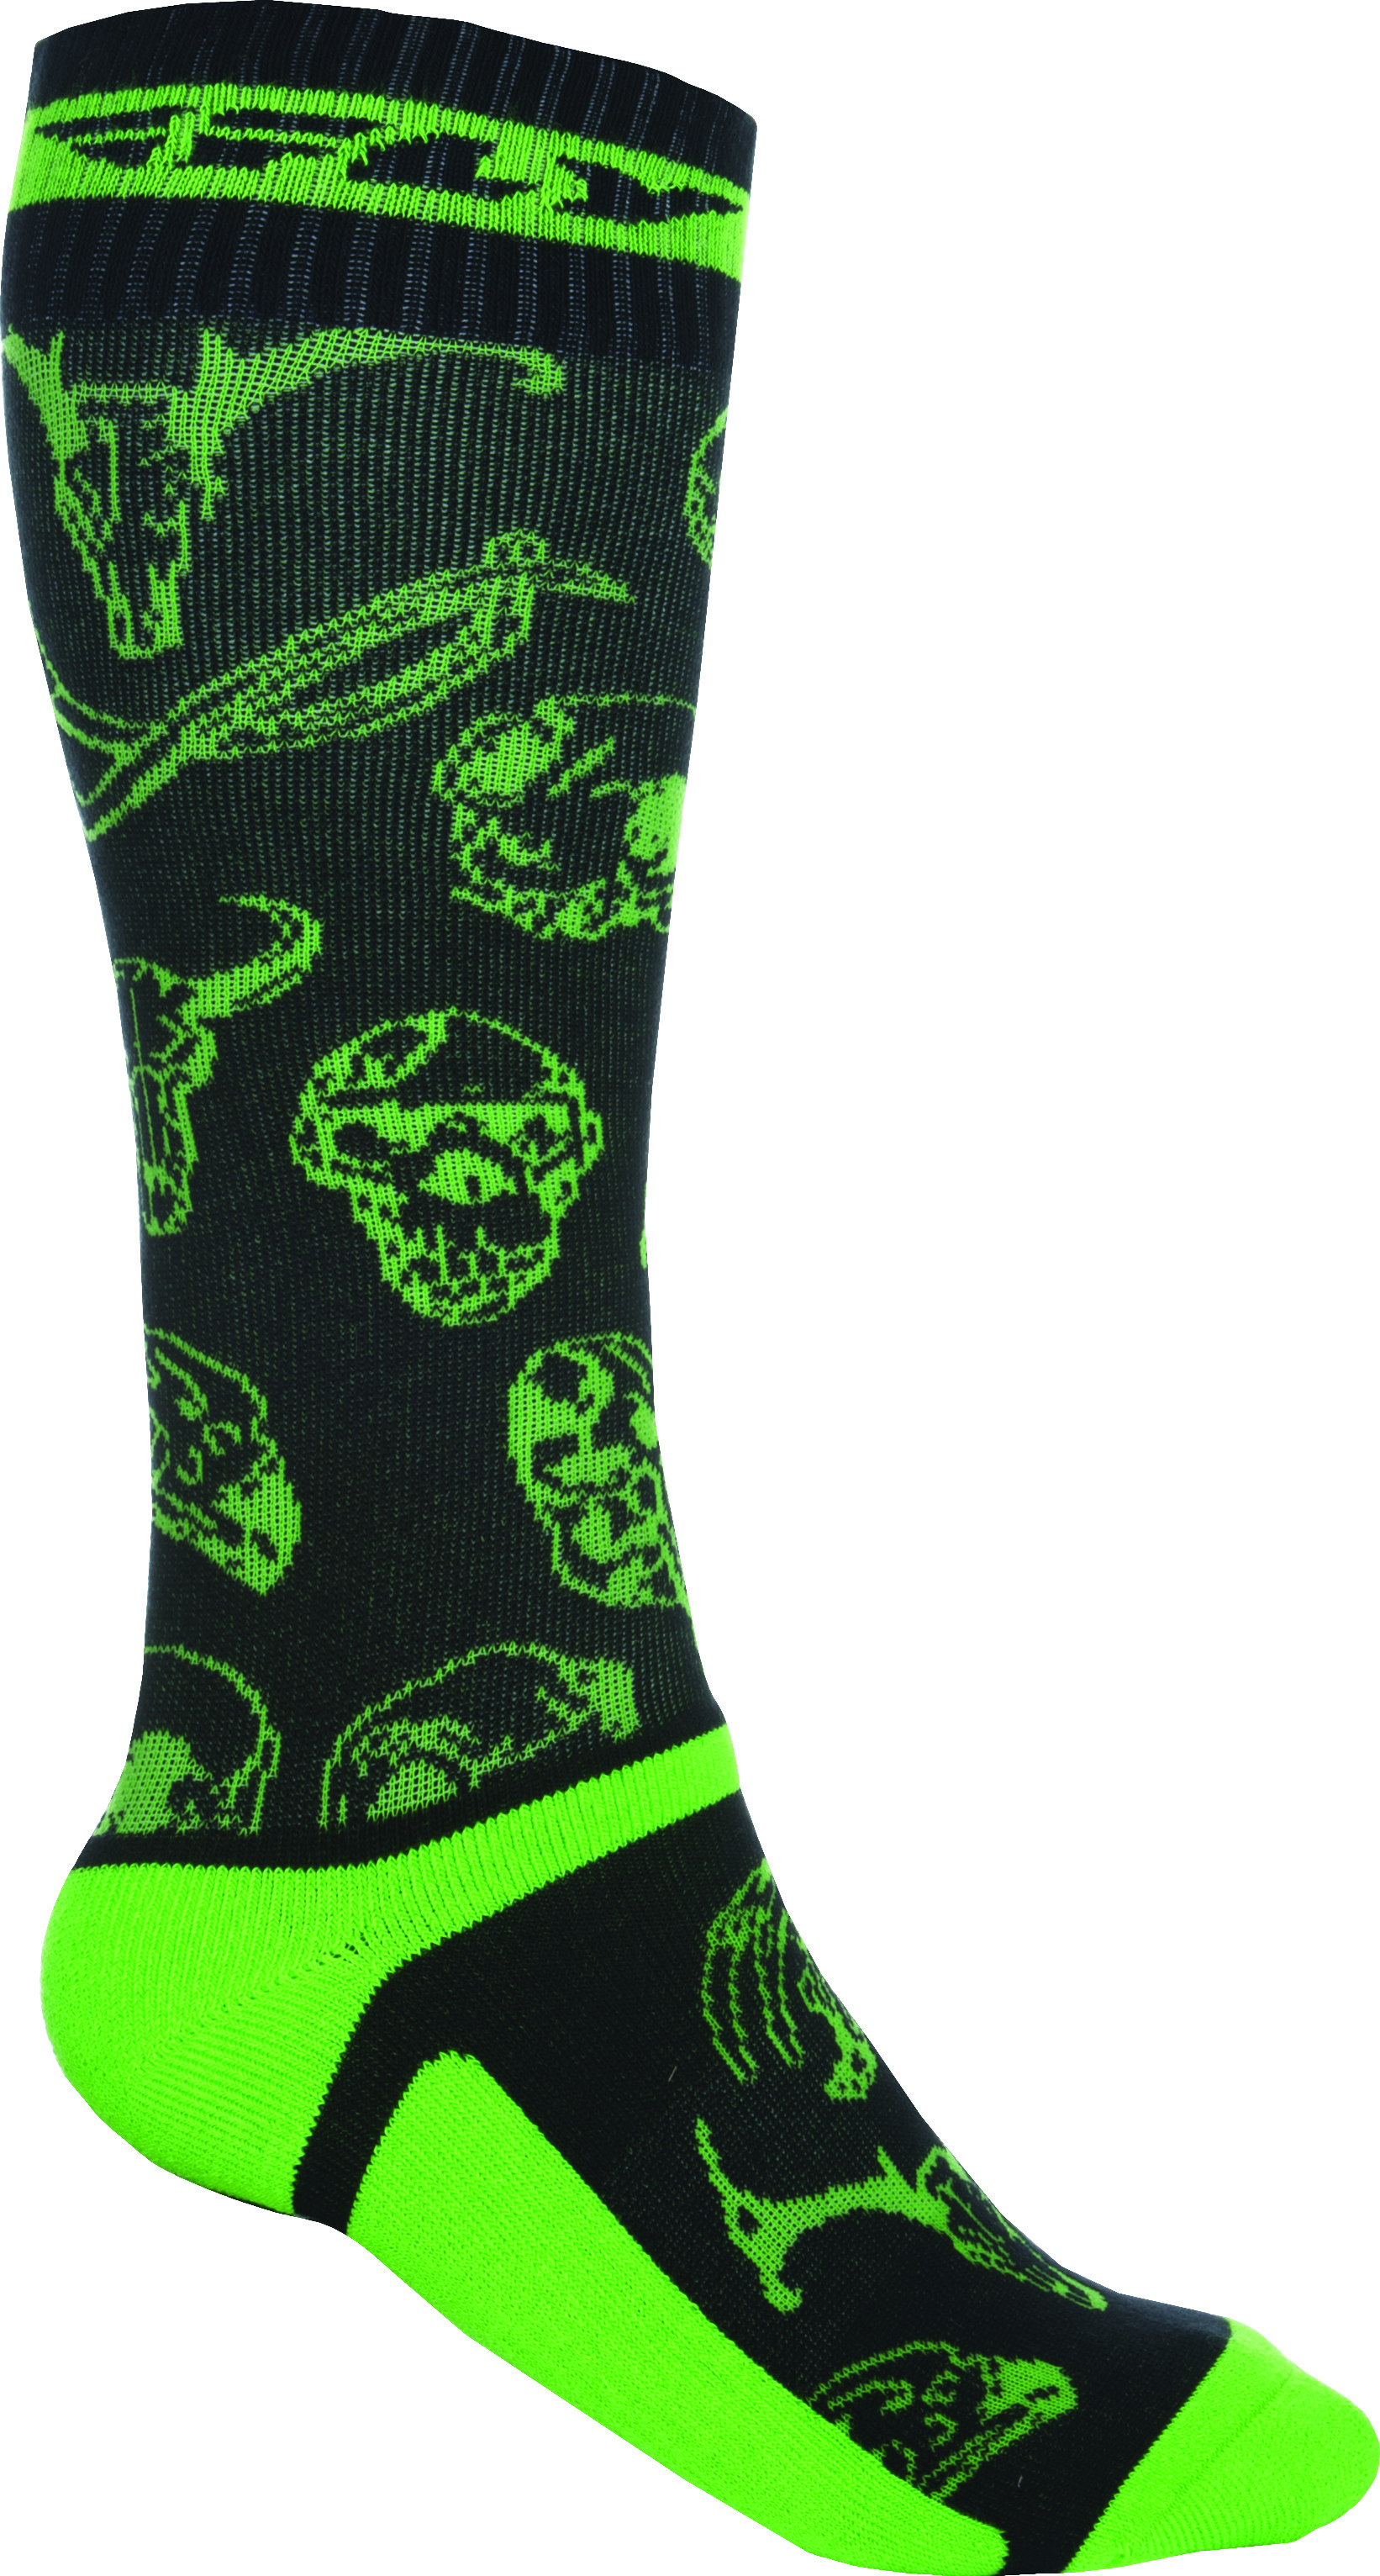 Mx Pro Sock Thin Green/Black L/X